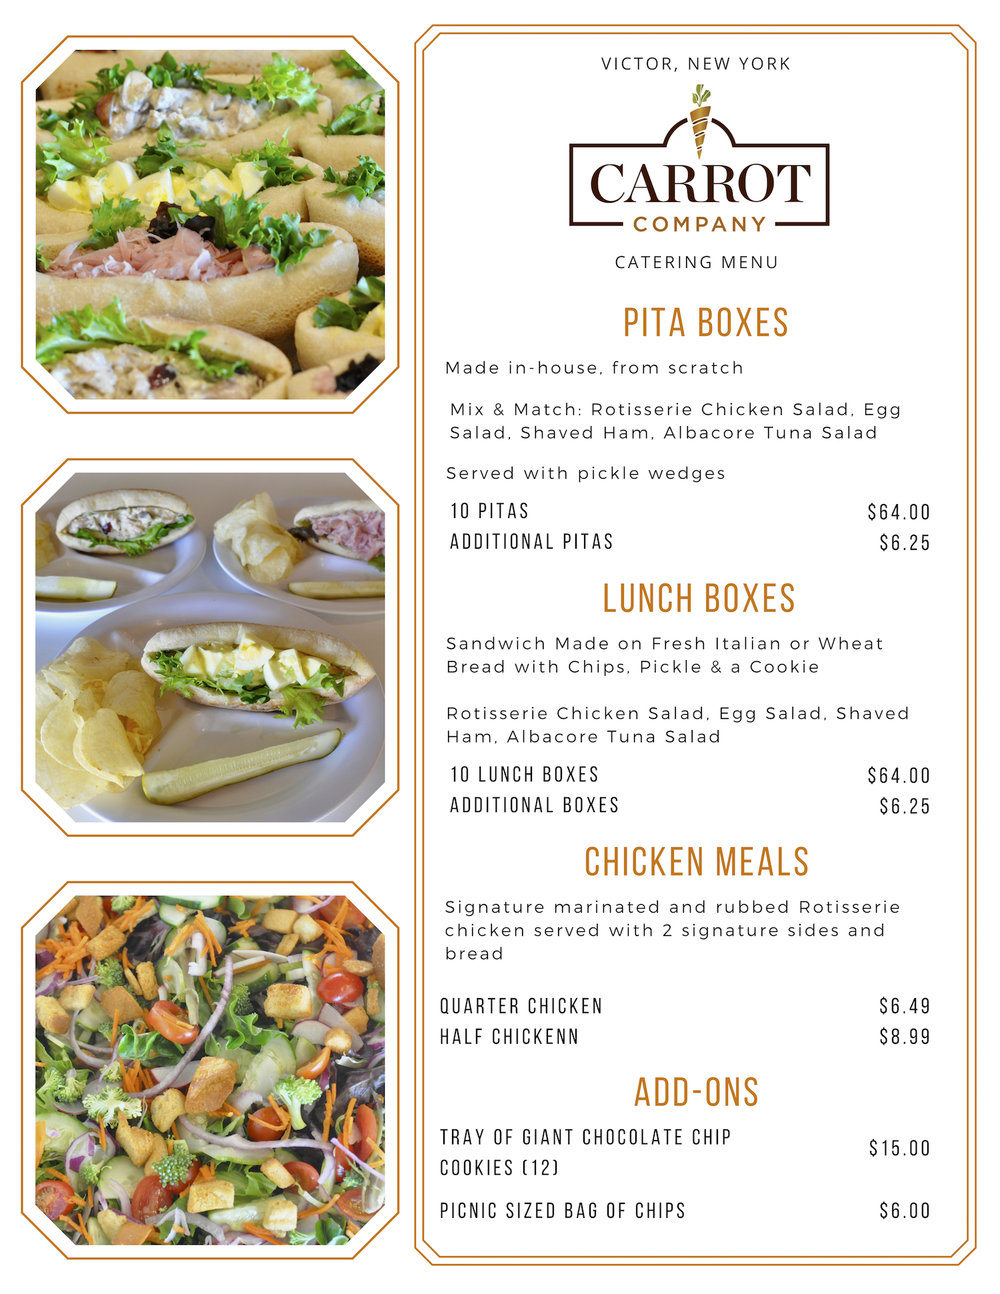 Carrot Company Catering Menu - Page 1.jpg